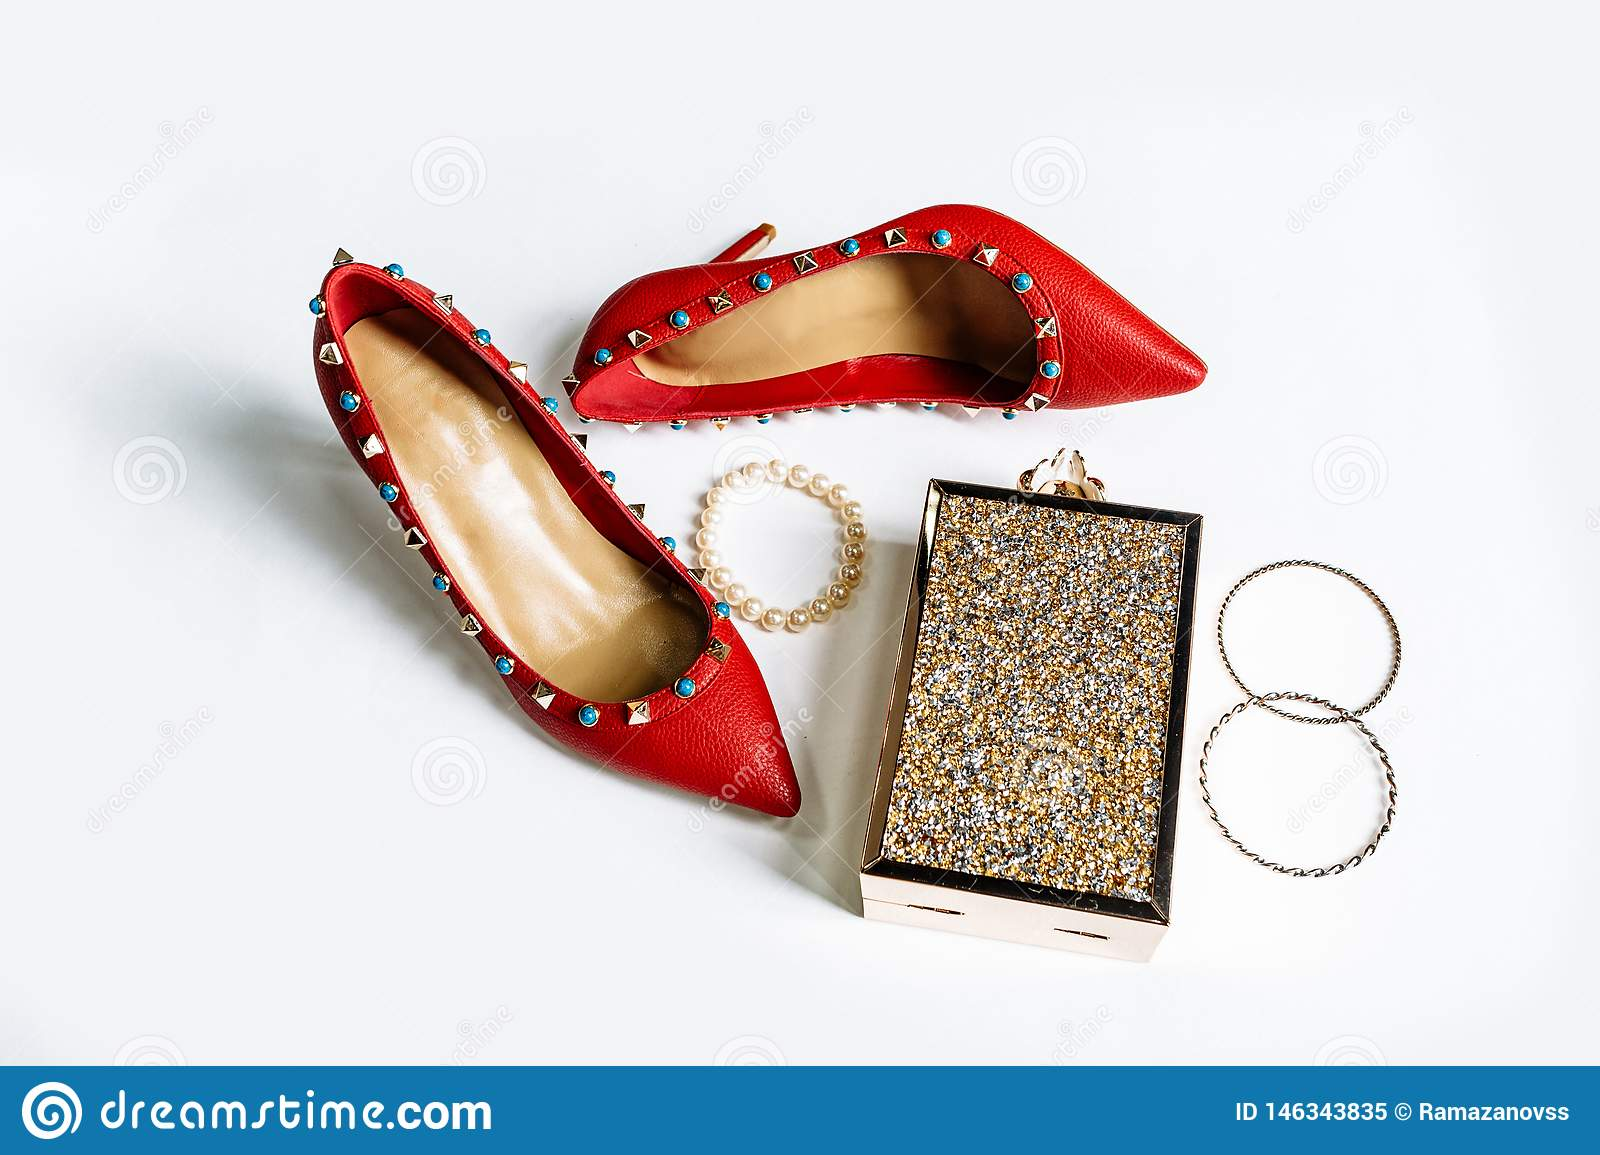 Pair of red high-heeled shoes with pointed toes, decorated with metal blue inserts and metal clutch with sparcles on a white